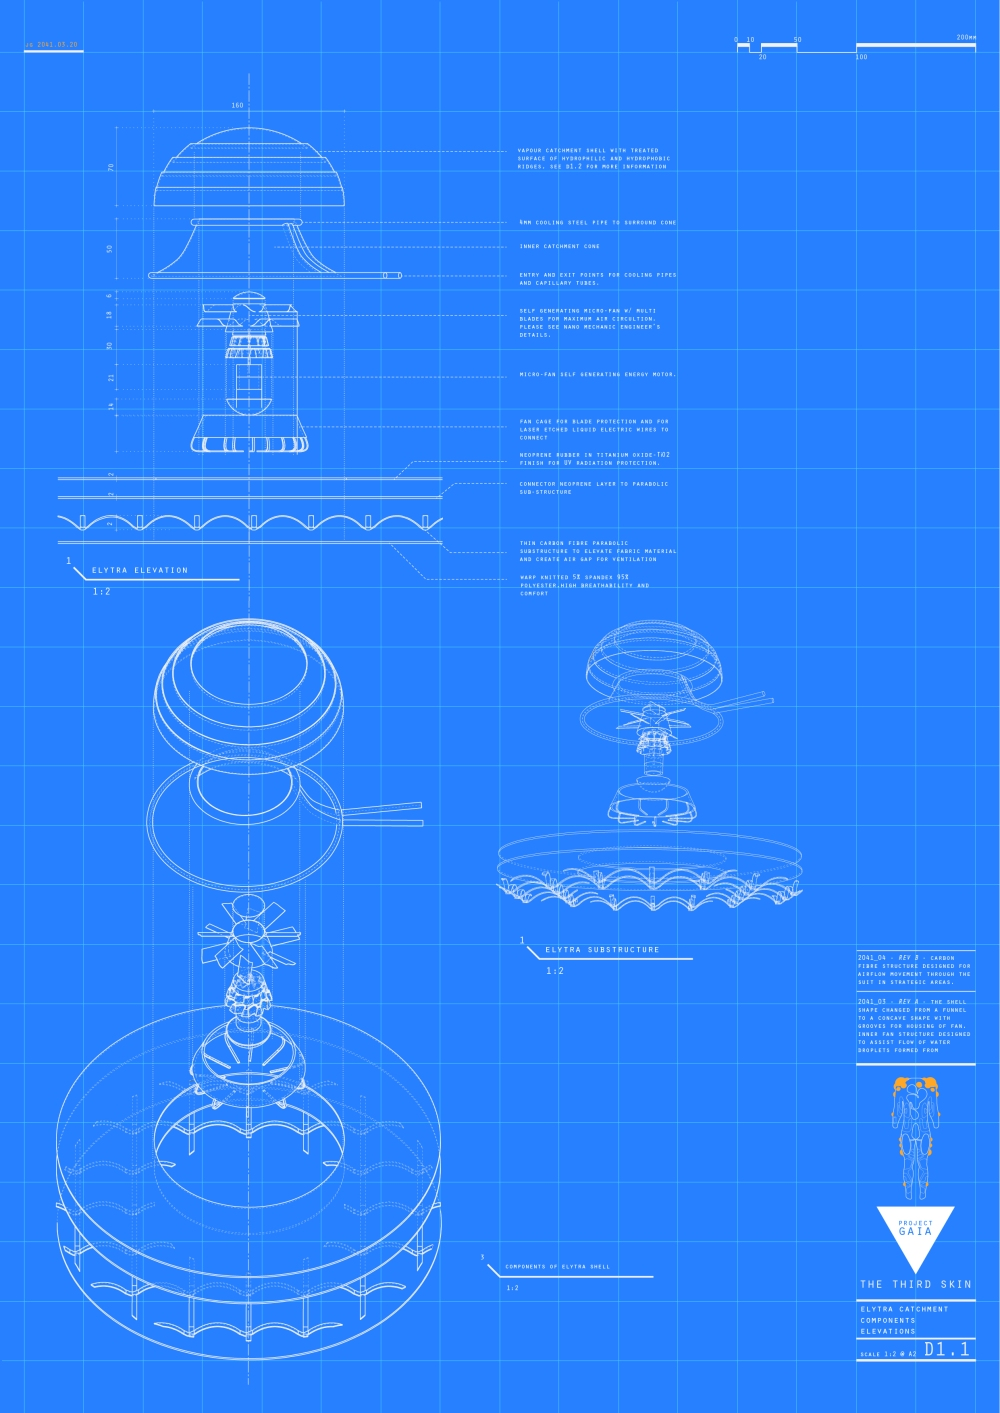 JOHNGATIP_BLUEPRINTS_THETHIRDSKIN_14